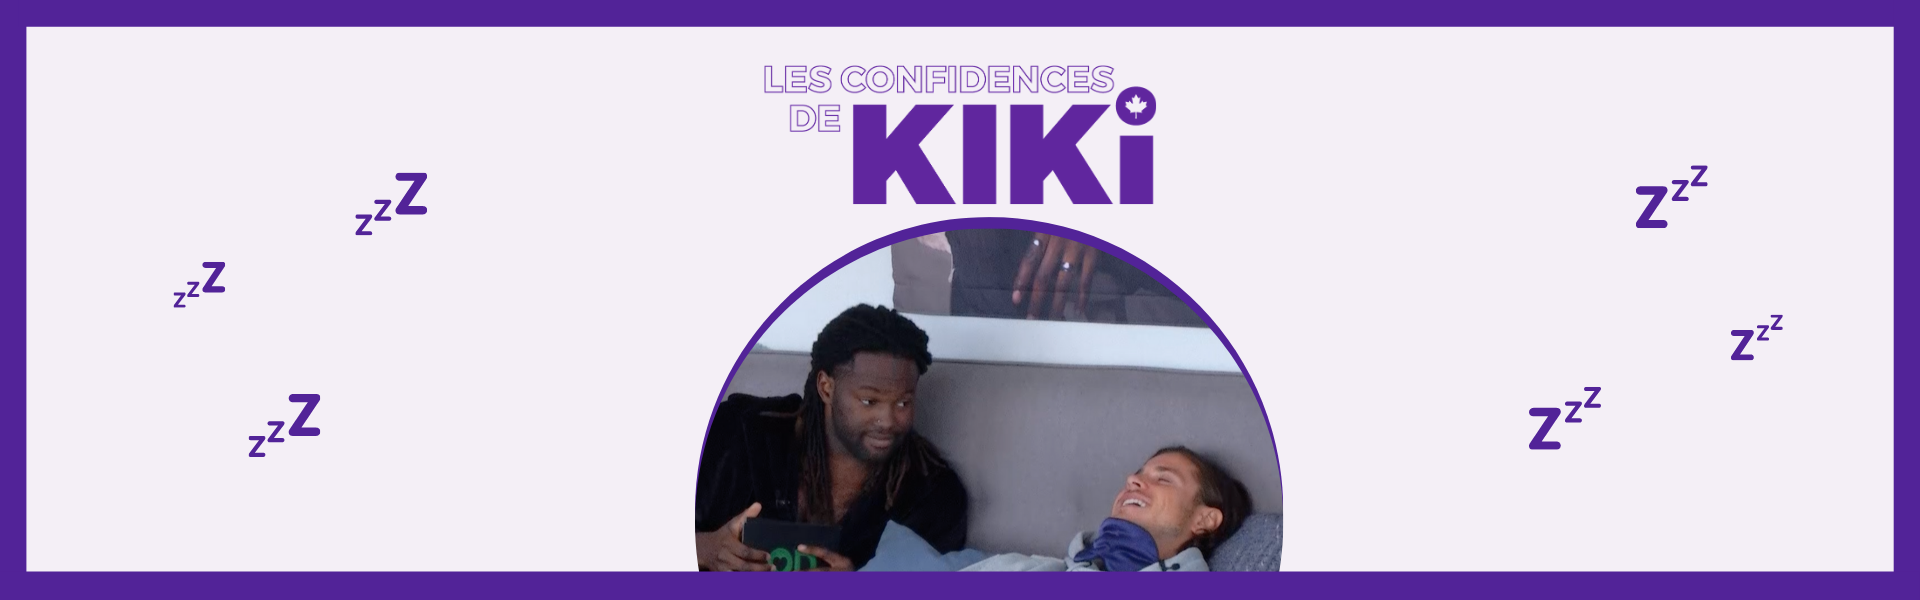 Confidences de Kiari et Carl Occupation Double 2020 Chez nous Polysleep